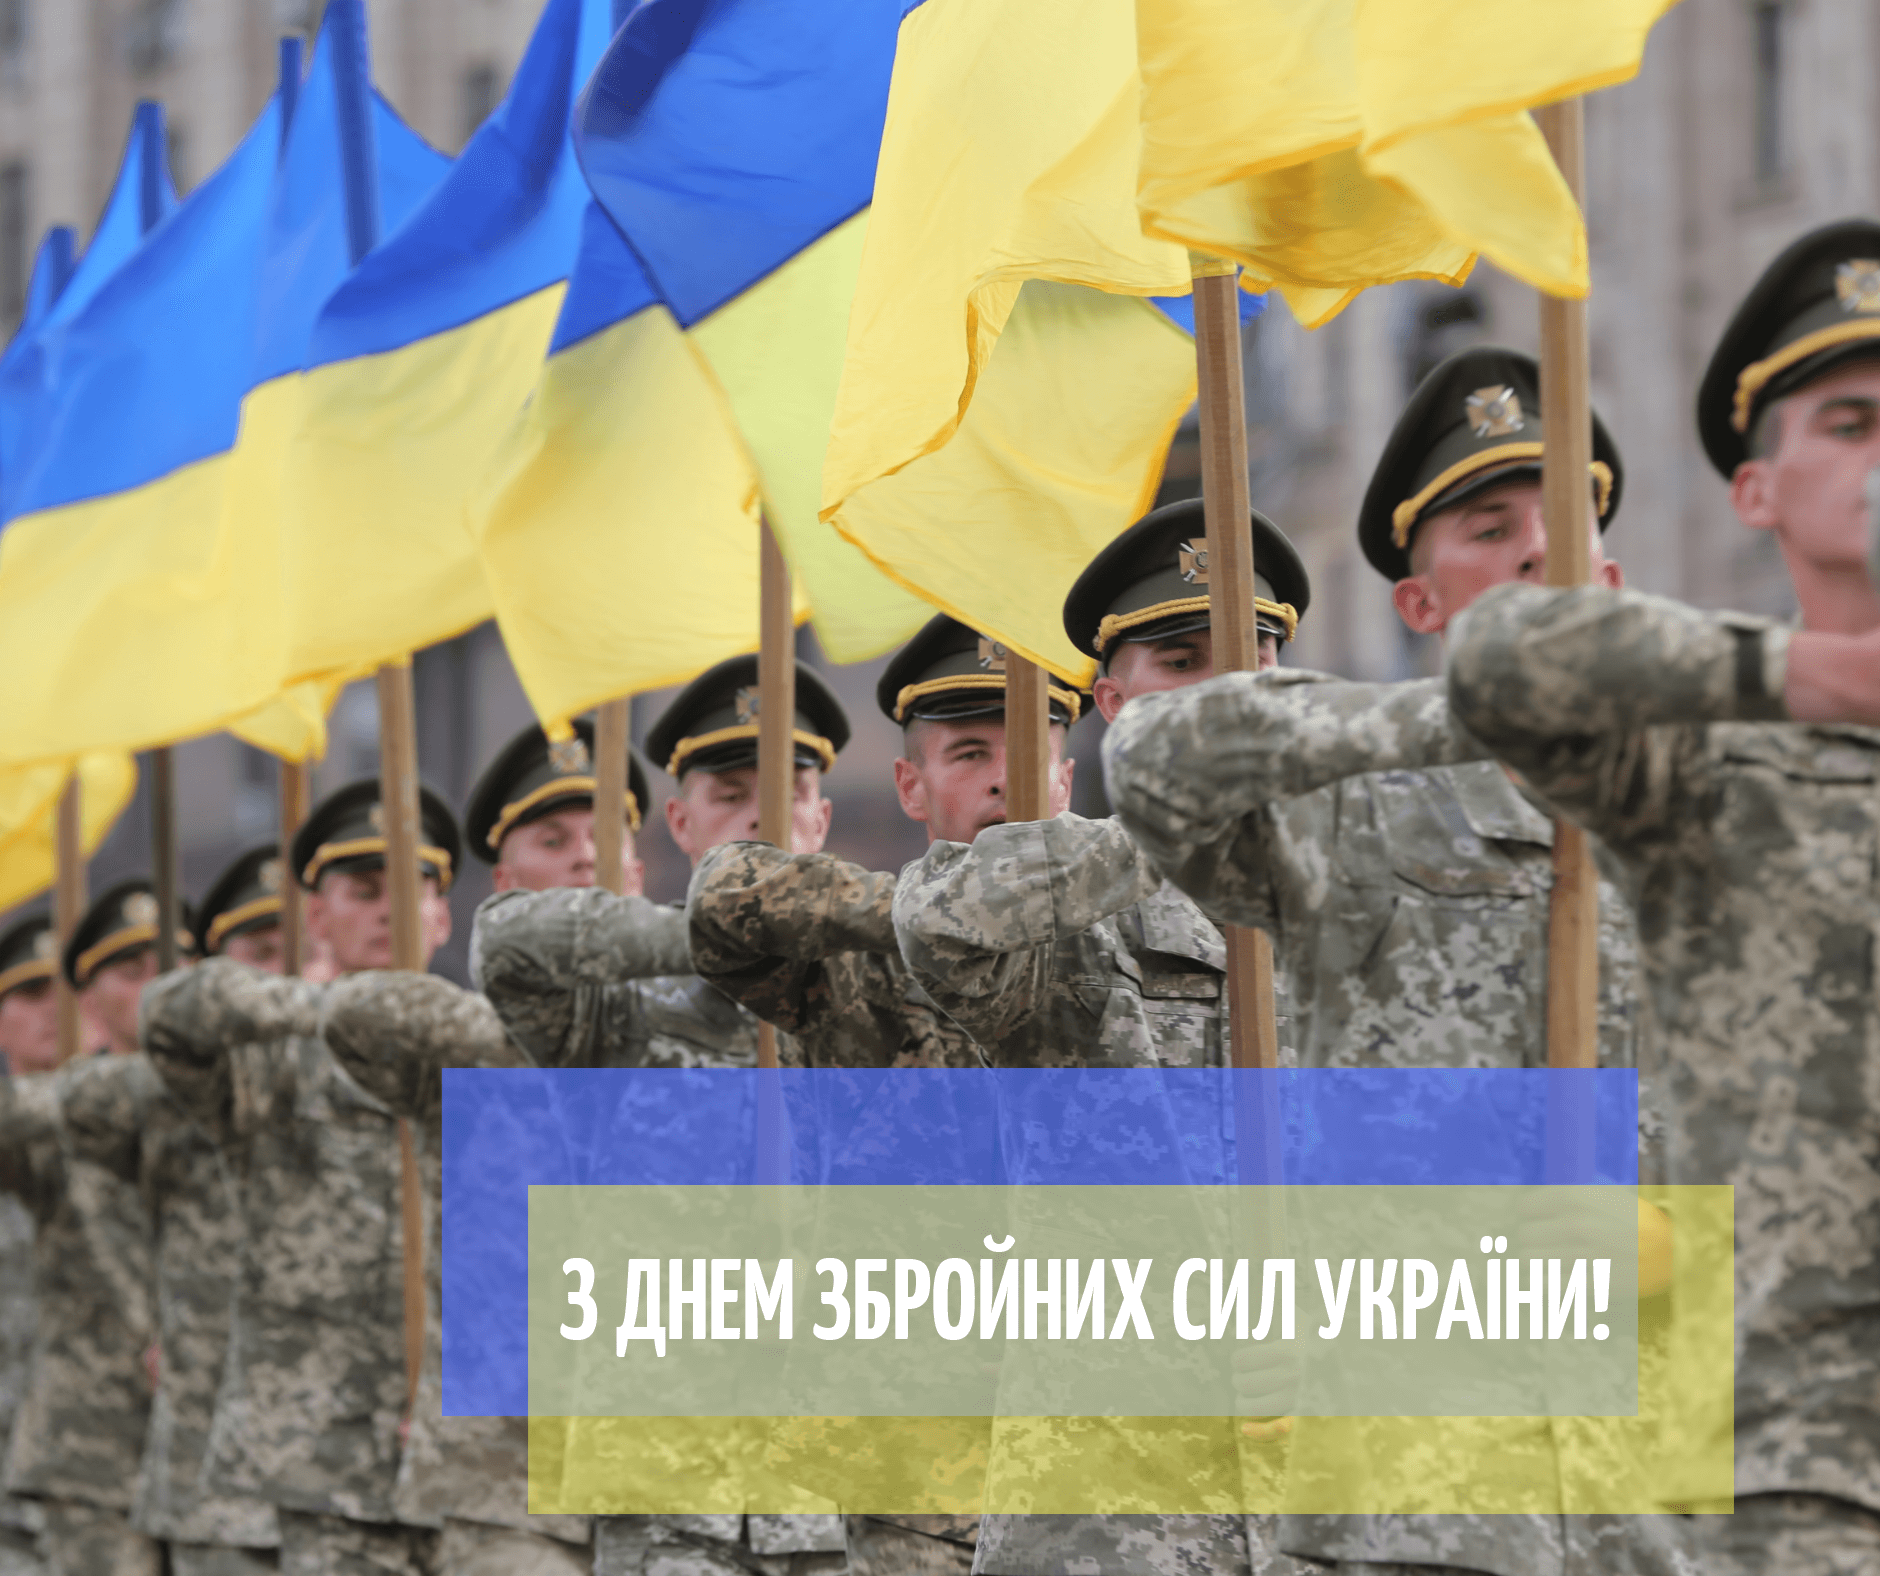 YUZHMASH congratulates on the Armed Forces Day